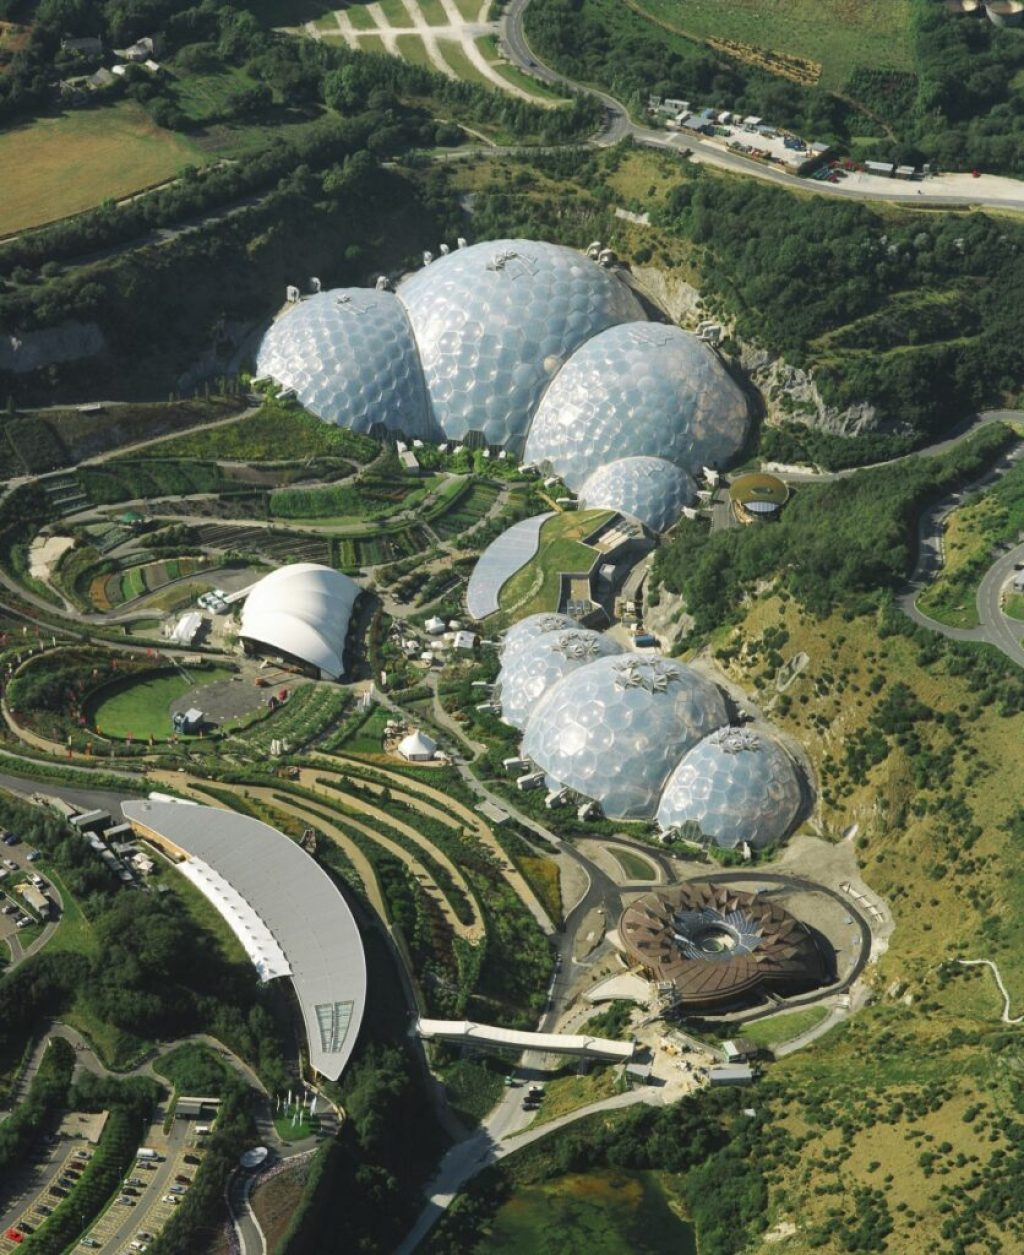 The Eden Project in Cornwall. Photo credit: Sealand Aerial Photography